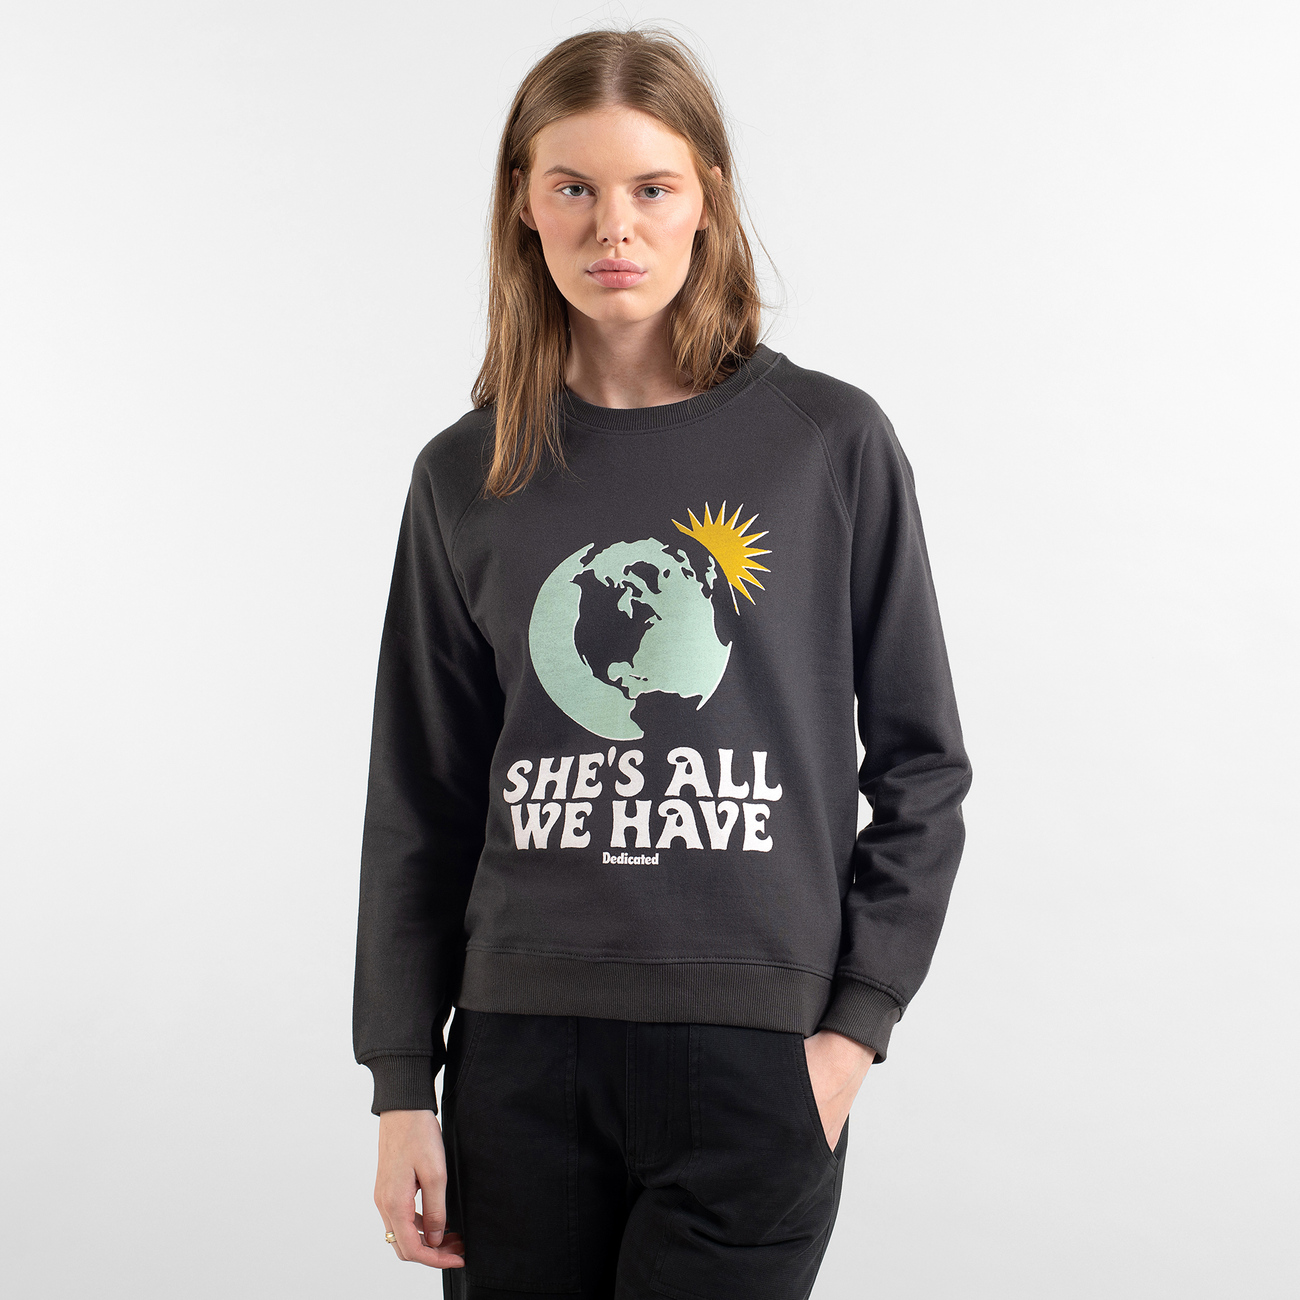 Sweatshirt Ystad Raglan All We Have